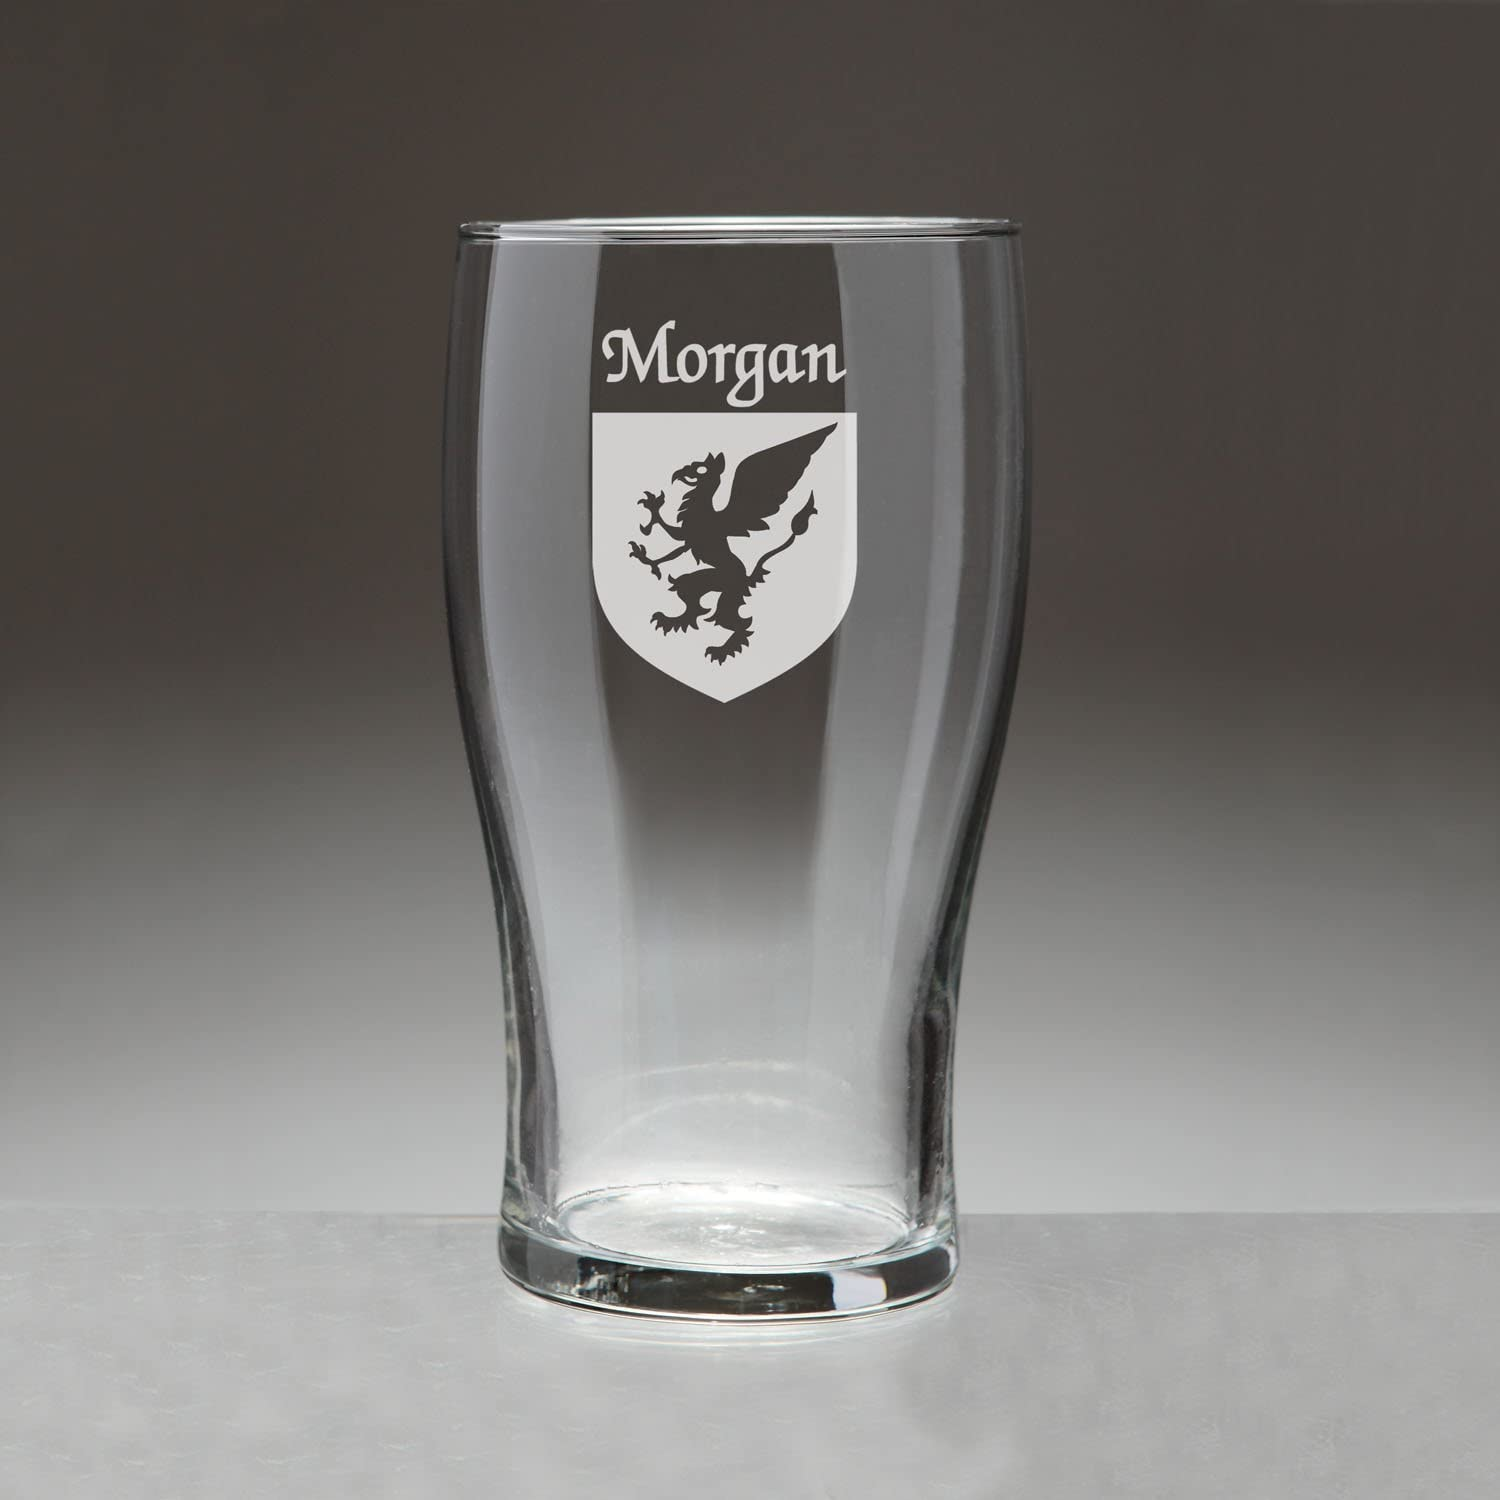 Morgan Irish Coat of Arms Tavern Sand Set New products world's highest quality popular Glasses 4 Etched - Challenge the lowest price